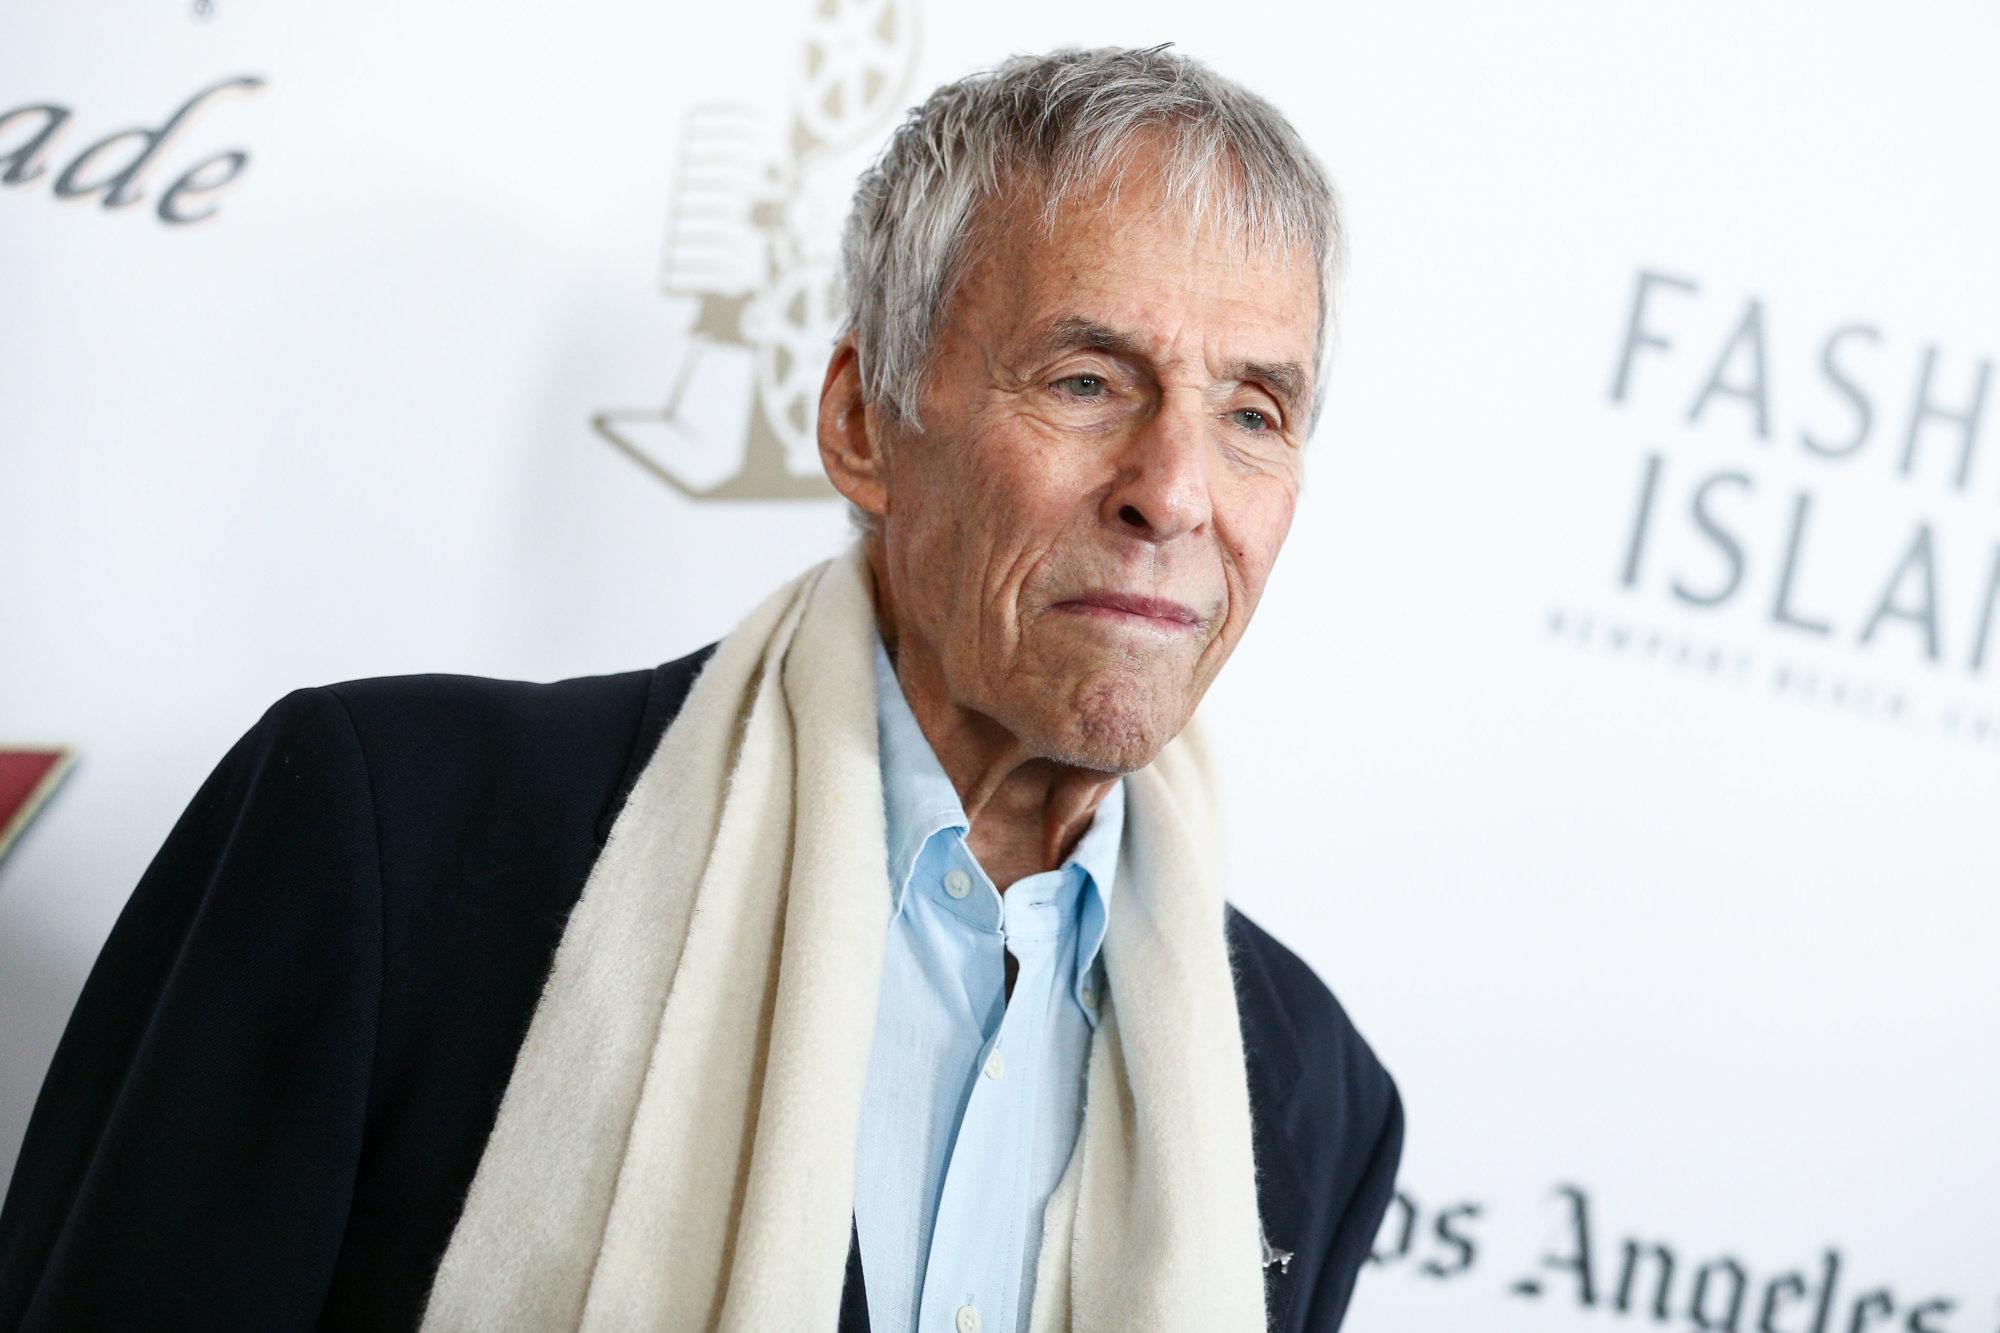 FILE - In this April 23, 2016 file photo, Burt Bacharach attends the 2016 Newport Beach Film Festival Honors in Newport Beach, Calif. Bacharach is canceling two September concerts to recover from a broken arm. A spokeswoman for the 88-year-old composer and conductor said Tuesday that Bacharach will skip scheduled performances on Sept. 3 in Curacao and Sept. 17 in Lancaster, California. Publicist Tina Brausam said Bacharach plans to resume his touring schedule in October. (Photo by John Salangsang/Invision/AP, File)